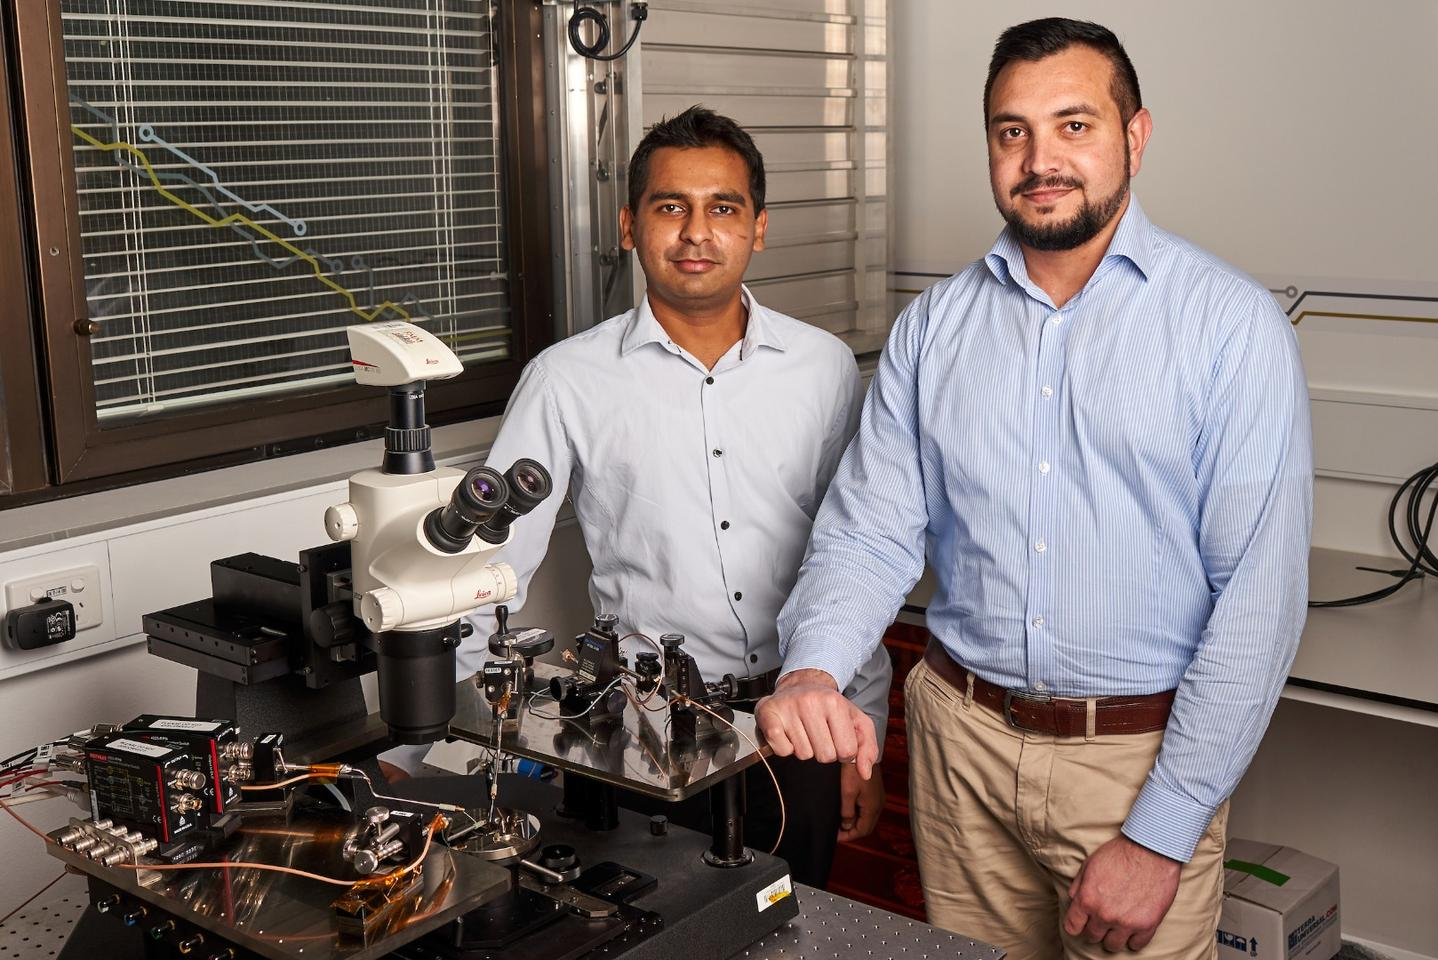 Researchers on the study Sumeet Walia (left) and Taimur Ahmed (right)